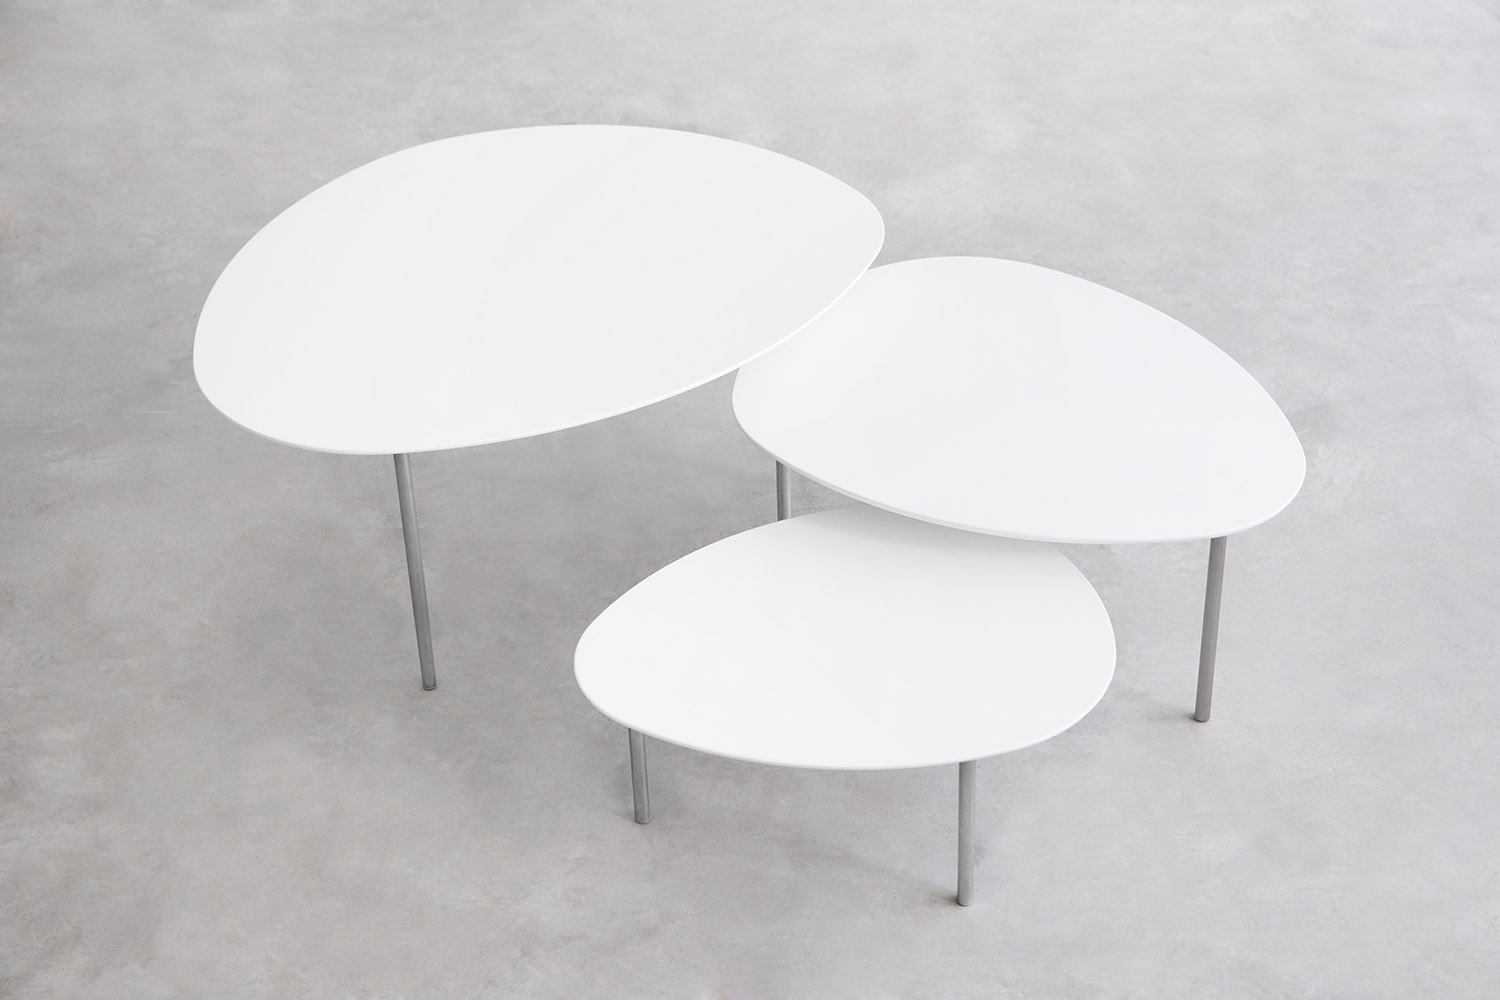 Shapes With Tables Eclipse Stua Organic Nesting PukZiOX